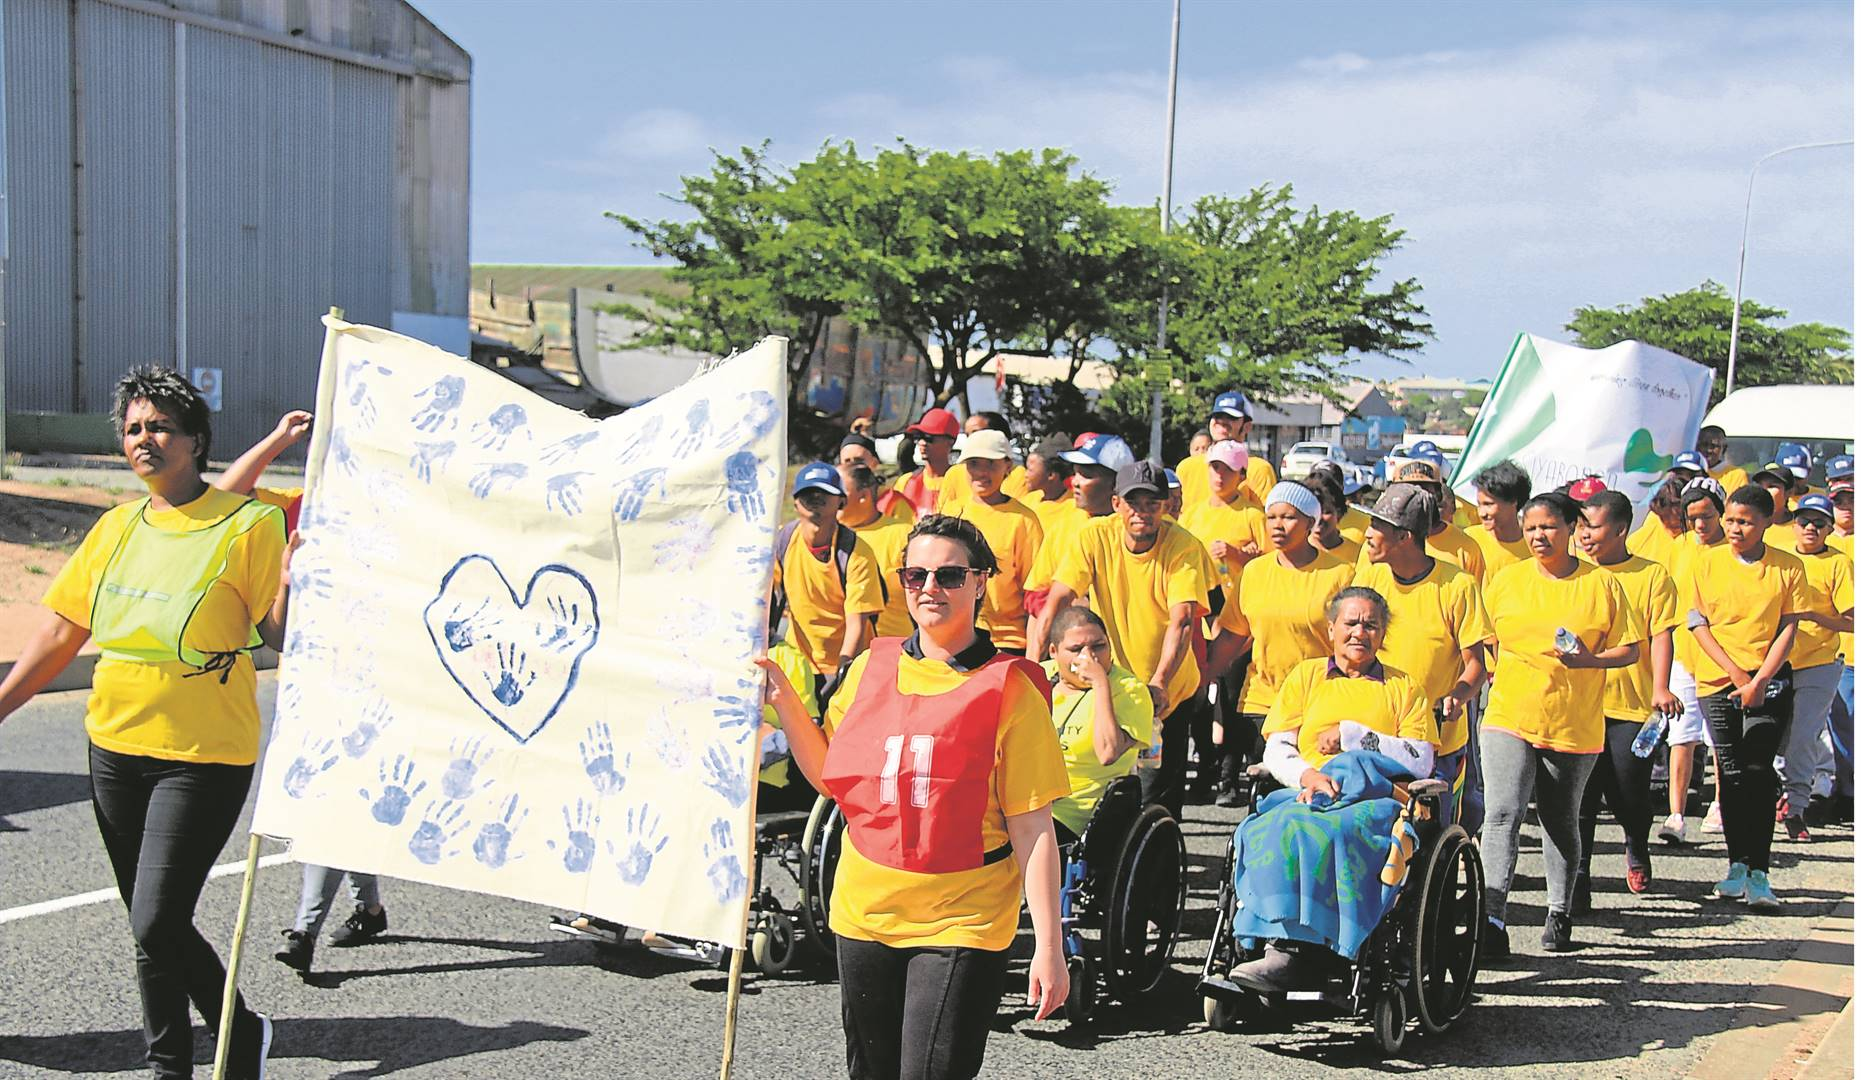 Tuesday 3 December is International Day of Disabled Person. To mark the day staff and residents of Siyabonga marched down Velddrif Road to create awareness of persons who are differently abled and the challenges they face on a daily basis.Picture: Keanan Harmse